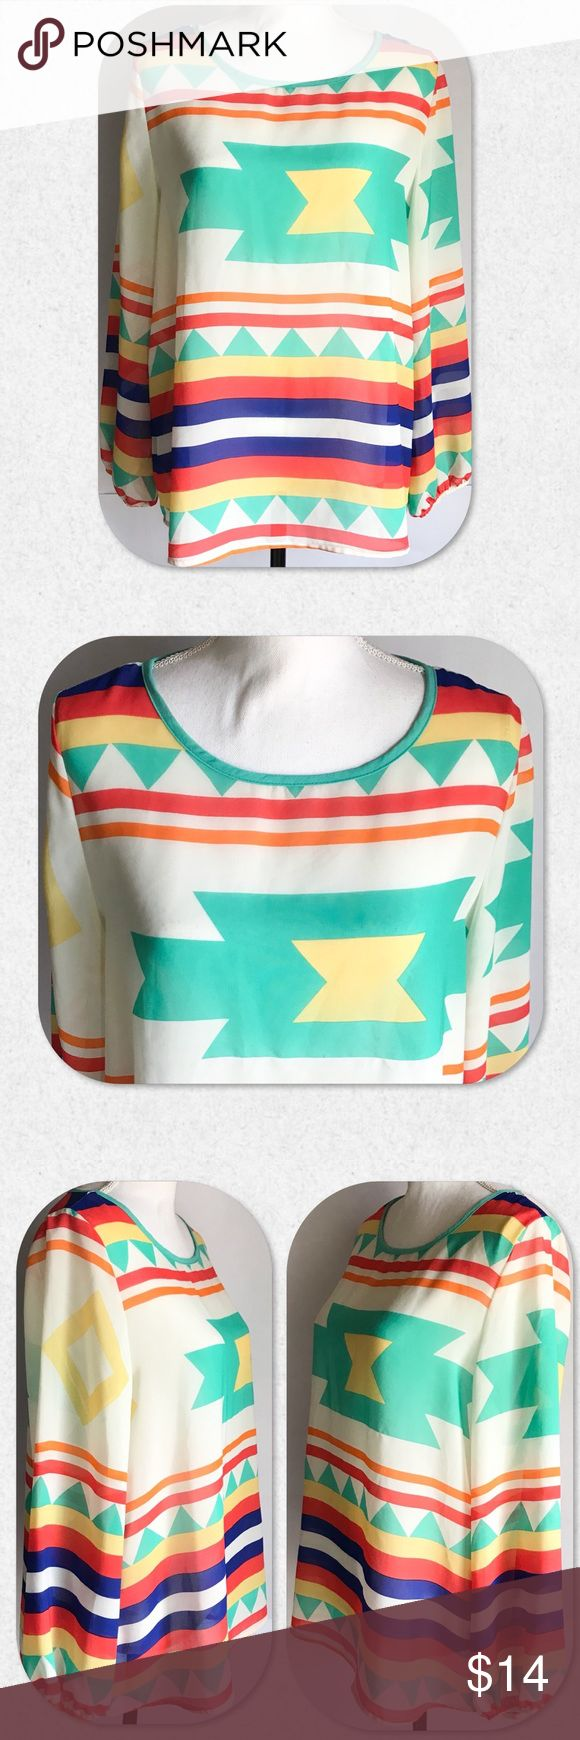 """Moa Aztec Print Long Sleeve Top Gorgeous bright, vivid colors in this Aztec print Long Sleeve Top. Very flowy and light. Elasticized wrists. Size L. Measurements taken laying flat.   B: 20 1/2"""" L: 25"""" MOA USA Tops Blouses"""